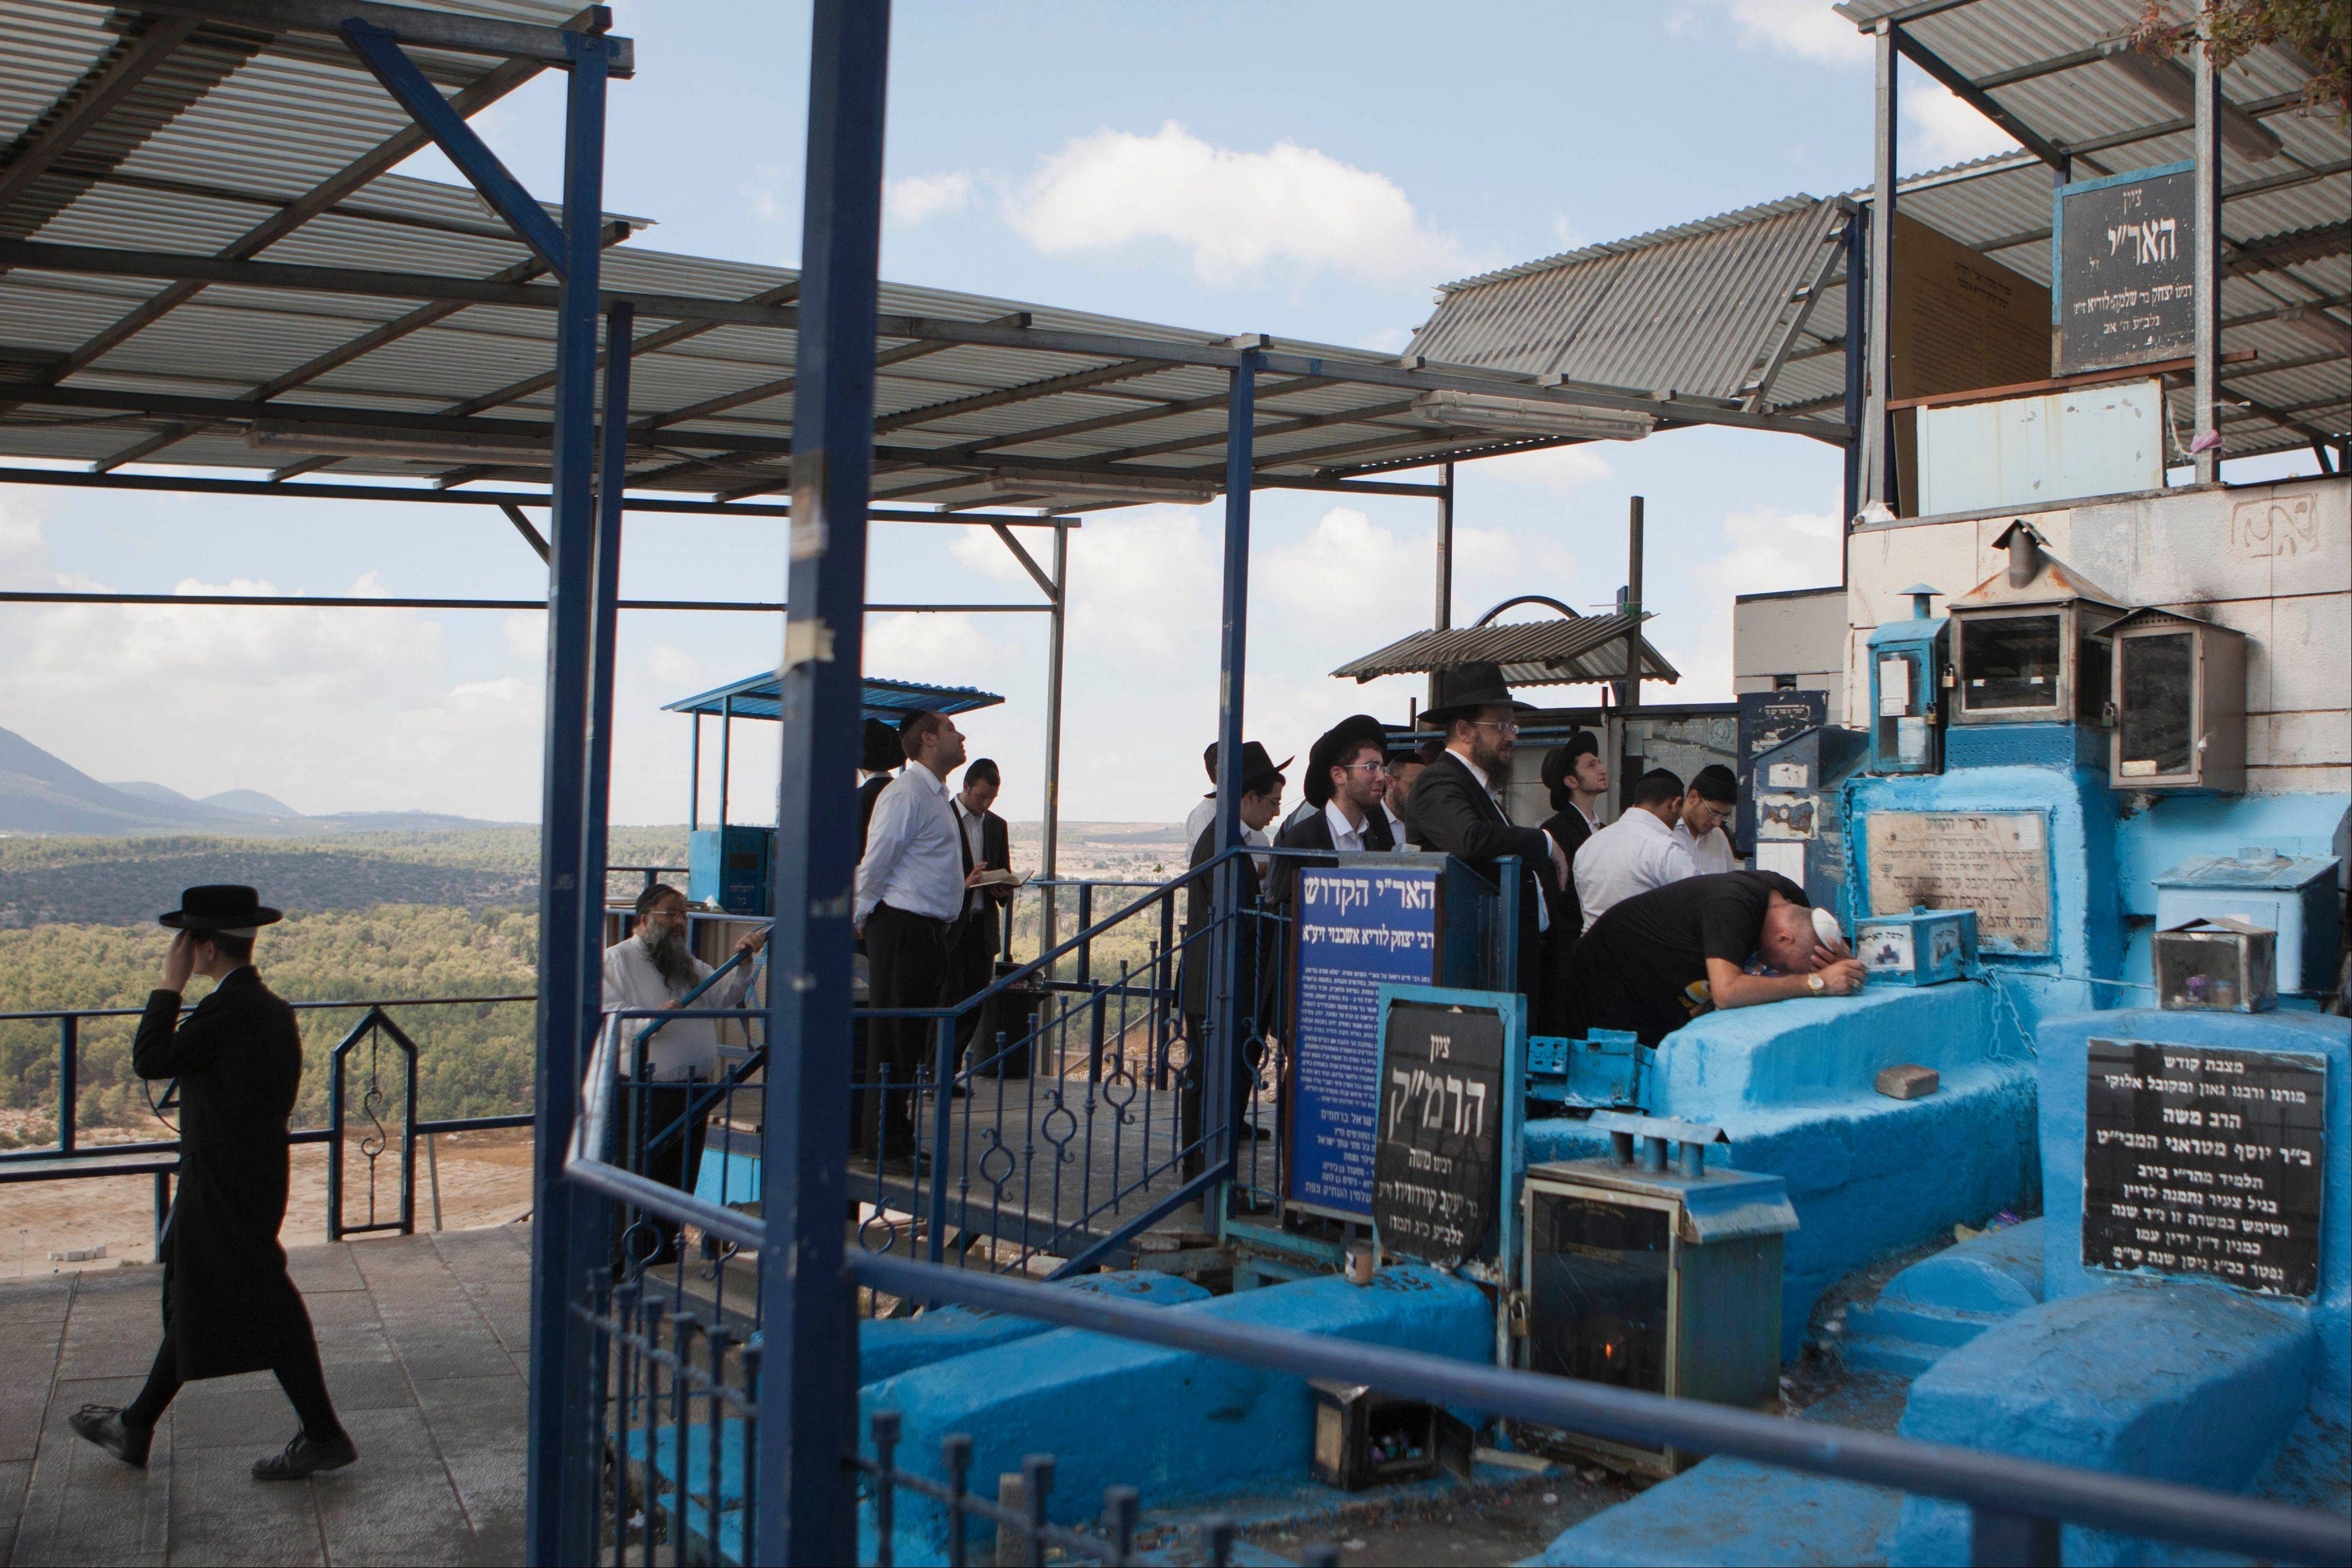 Jews visit the Ari cemetery in Safed, Israel.